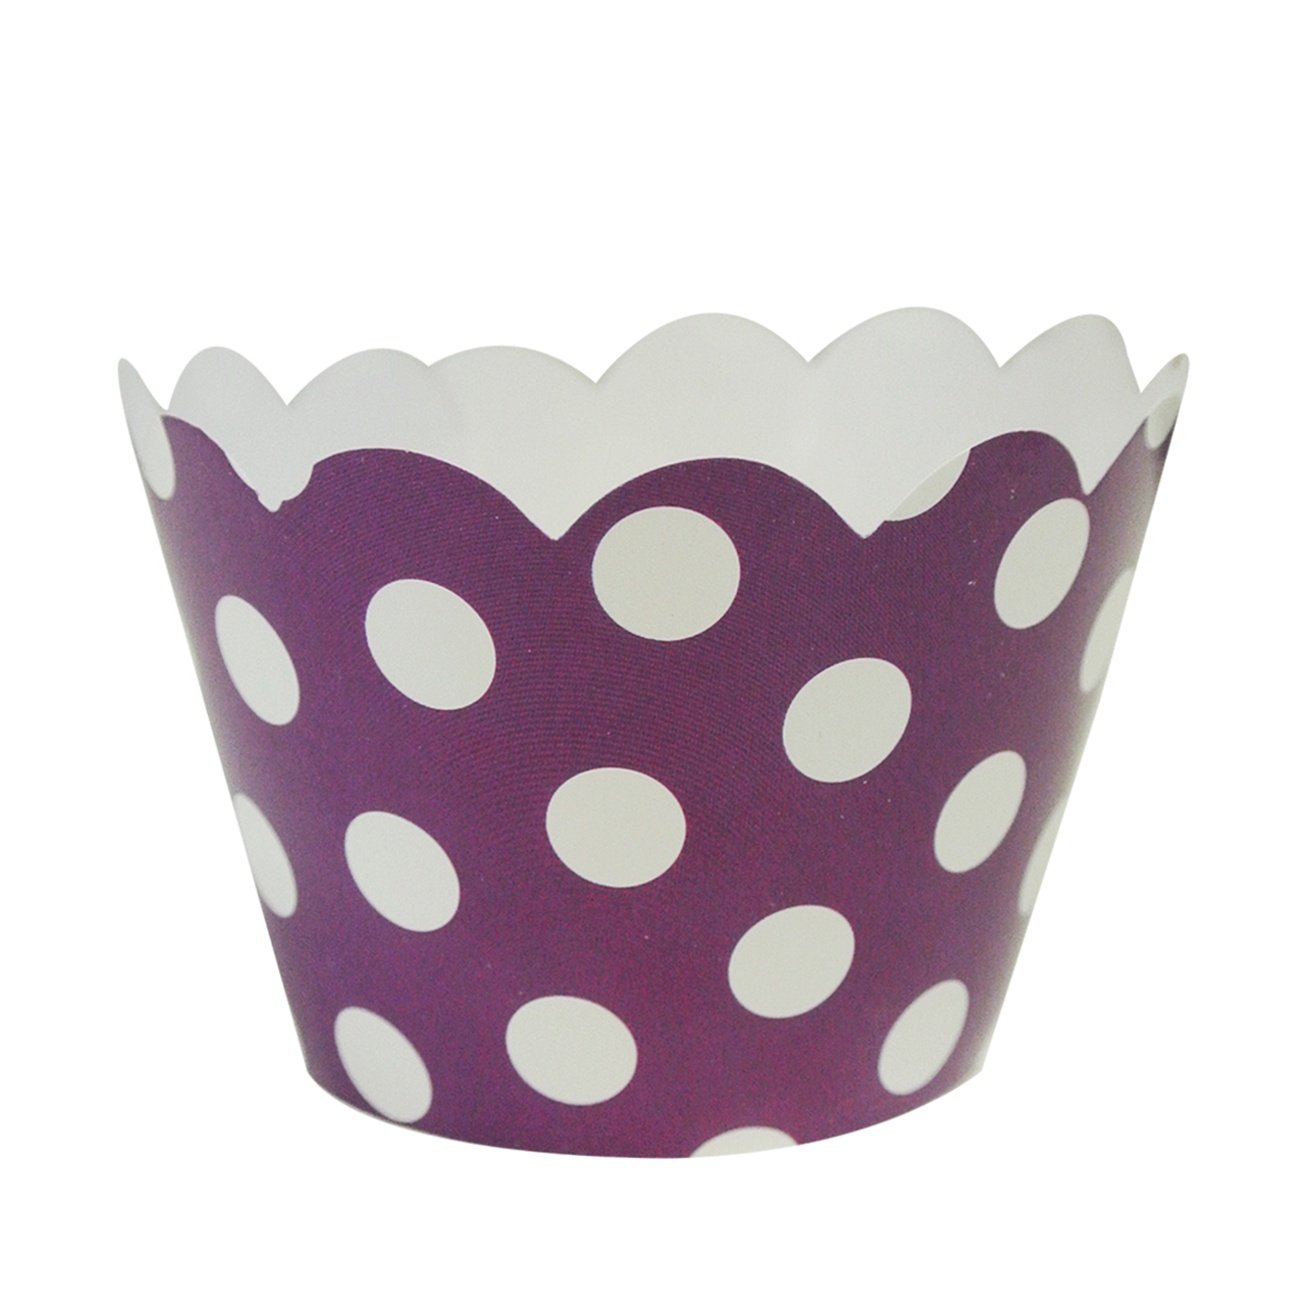 Wrapables Standard Size Polka Dots Cupcake Wrappers Hot Pink A67063c Set of 20